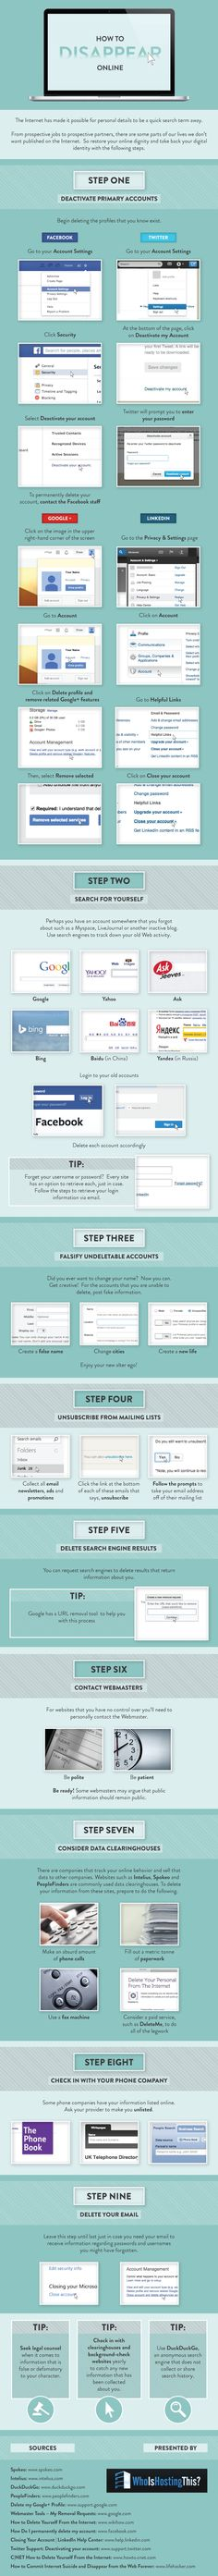 How to disappear online!  Just so you know what to do, if you want so!  #howto [INFOGRAPHIC]